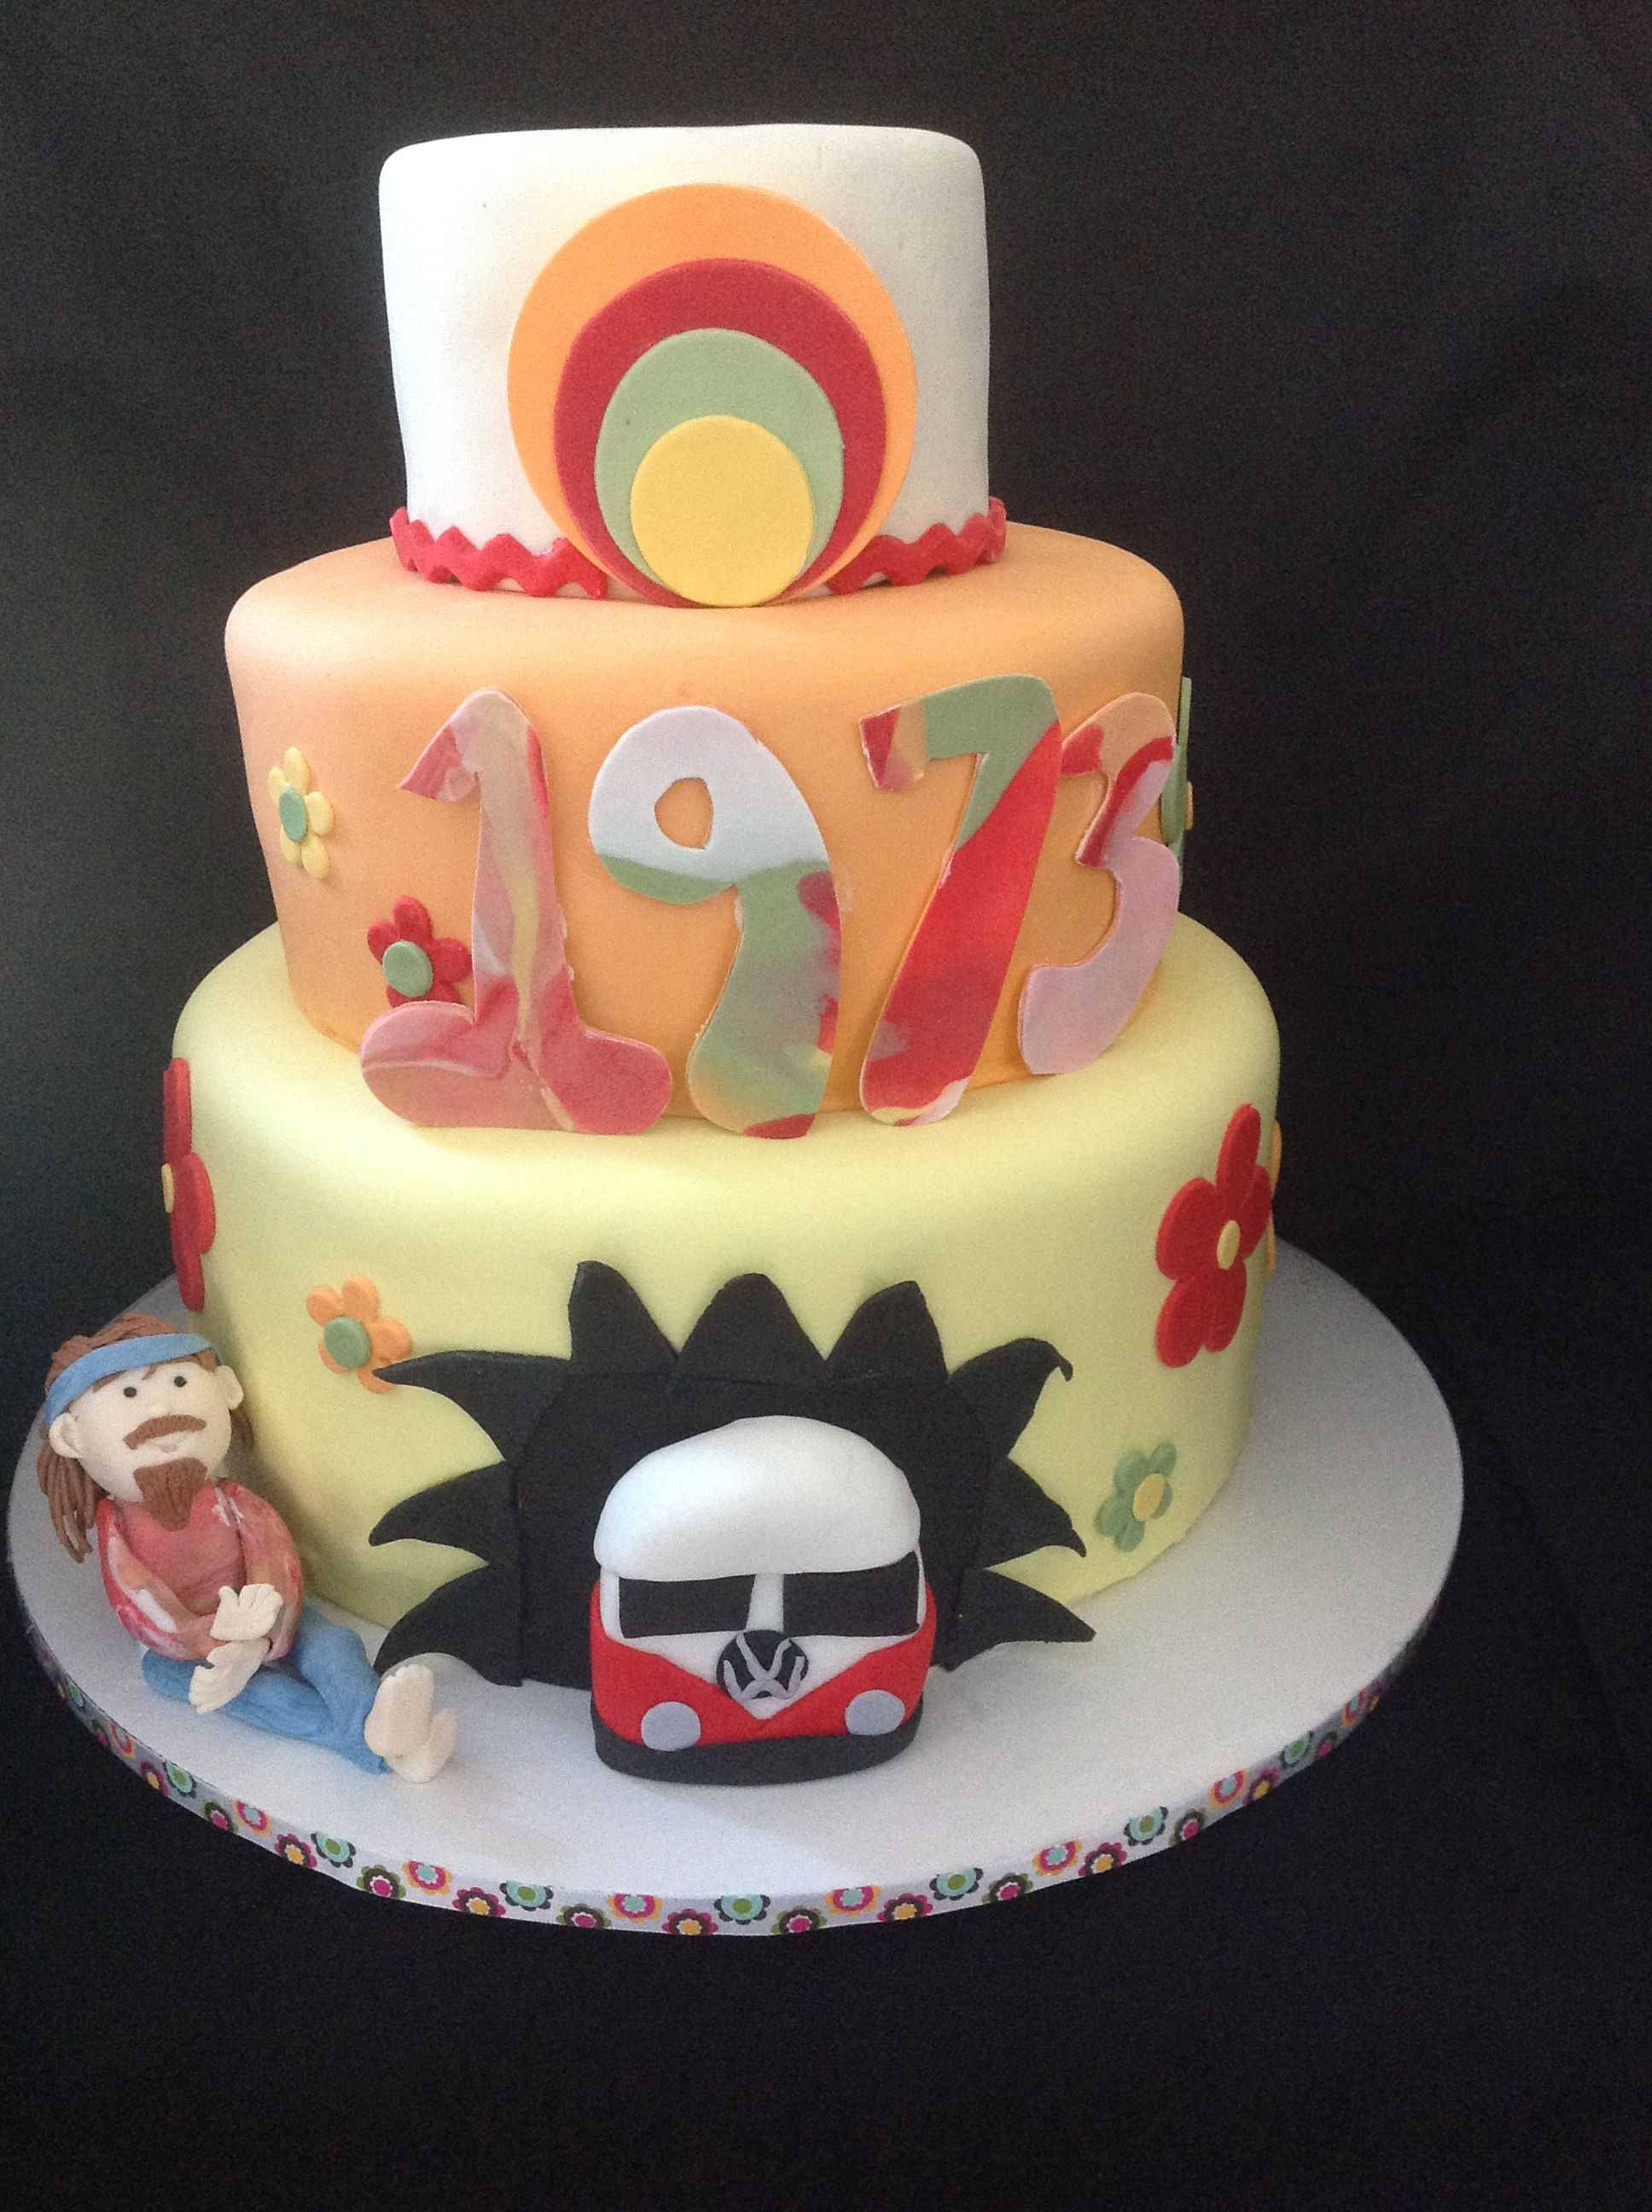 1970s cake with hippie and vw bus by amy hart cake